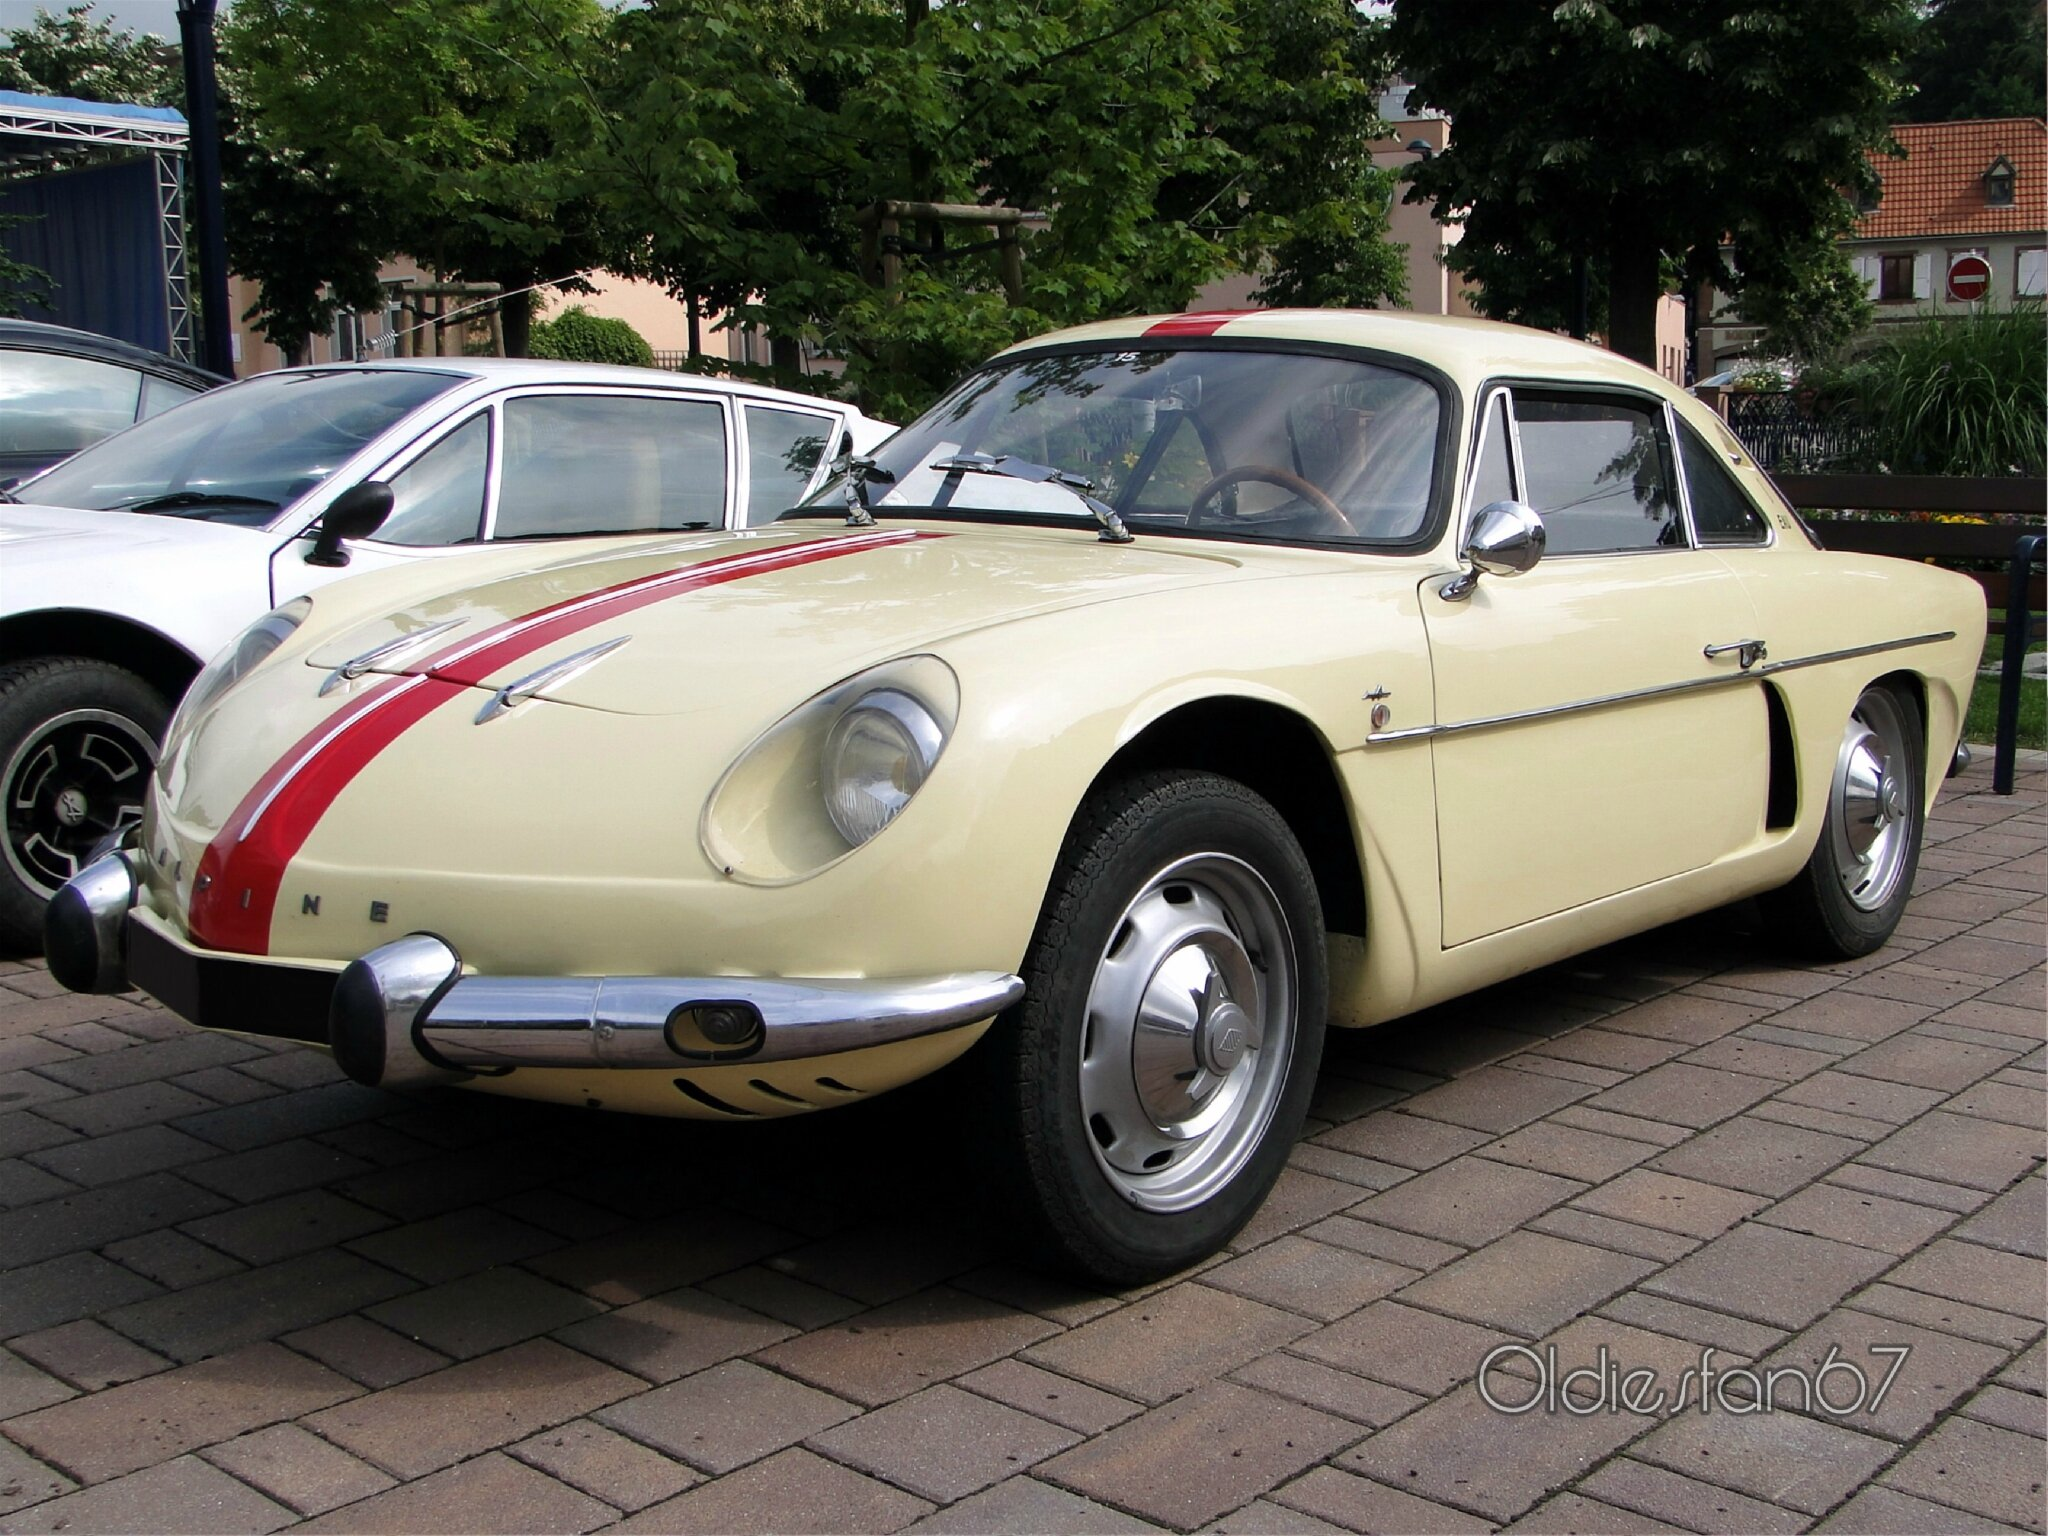 alpine renault a108 berlinette 1960 1965 oldiesfan67 mon blog auto. Black Bedroom Furniture Sets. Home Design Ideas